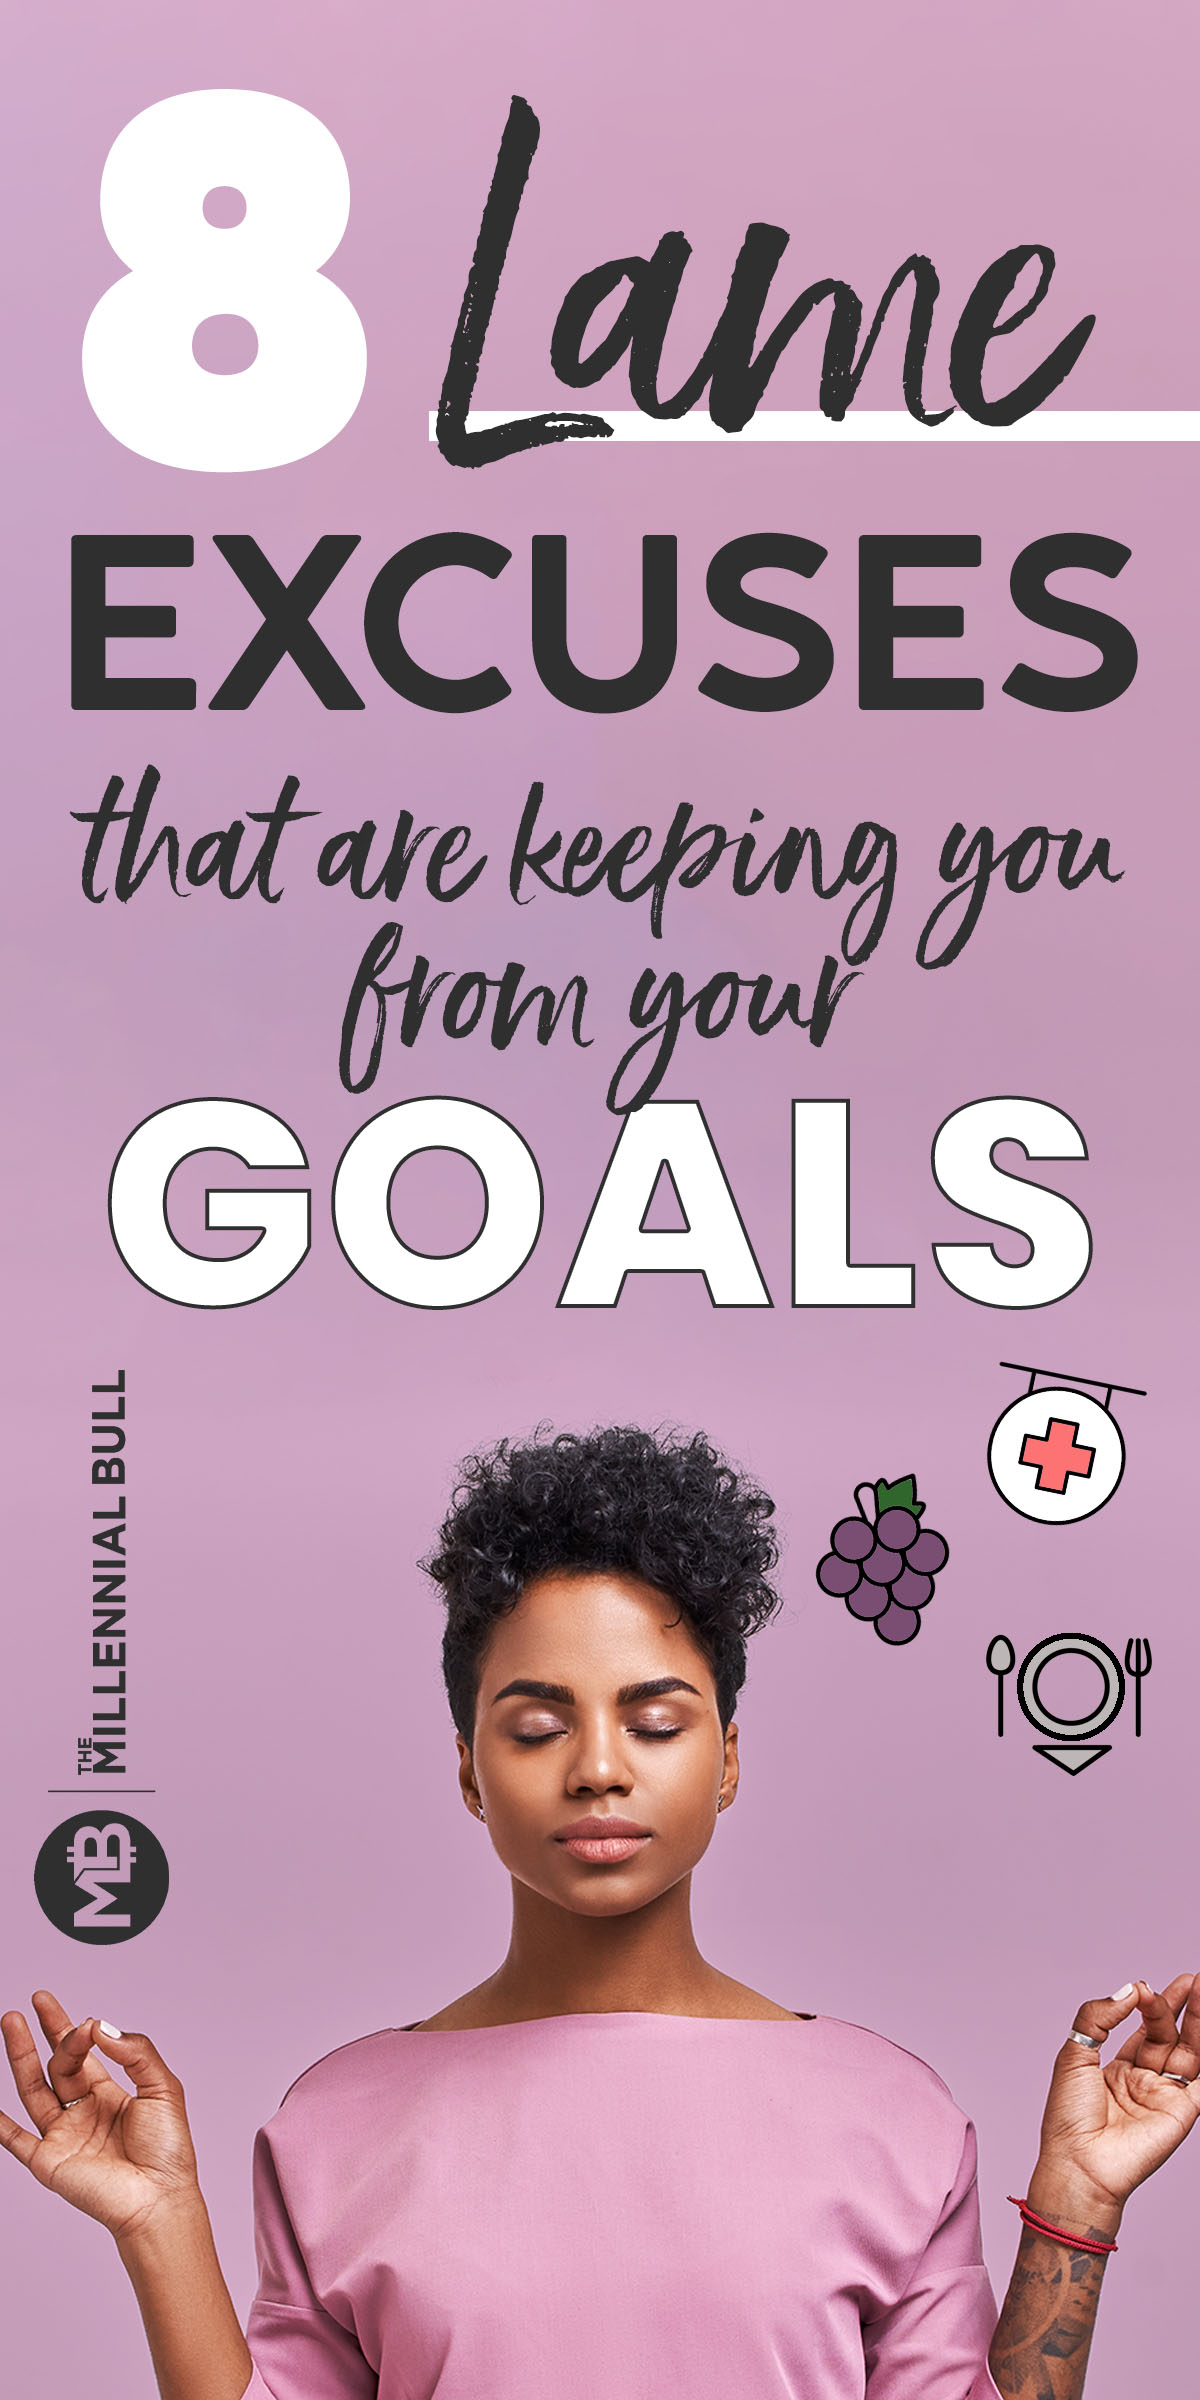 lame excuses that are keeping you from your goals - 8 Excuses You've Got To Stop Making To Succeed